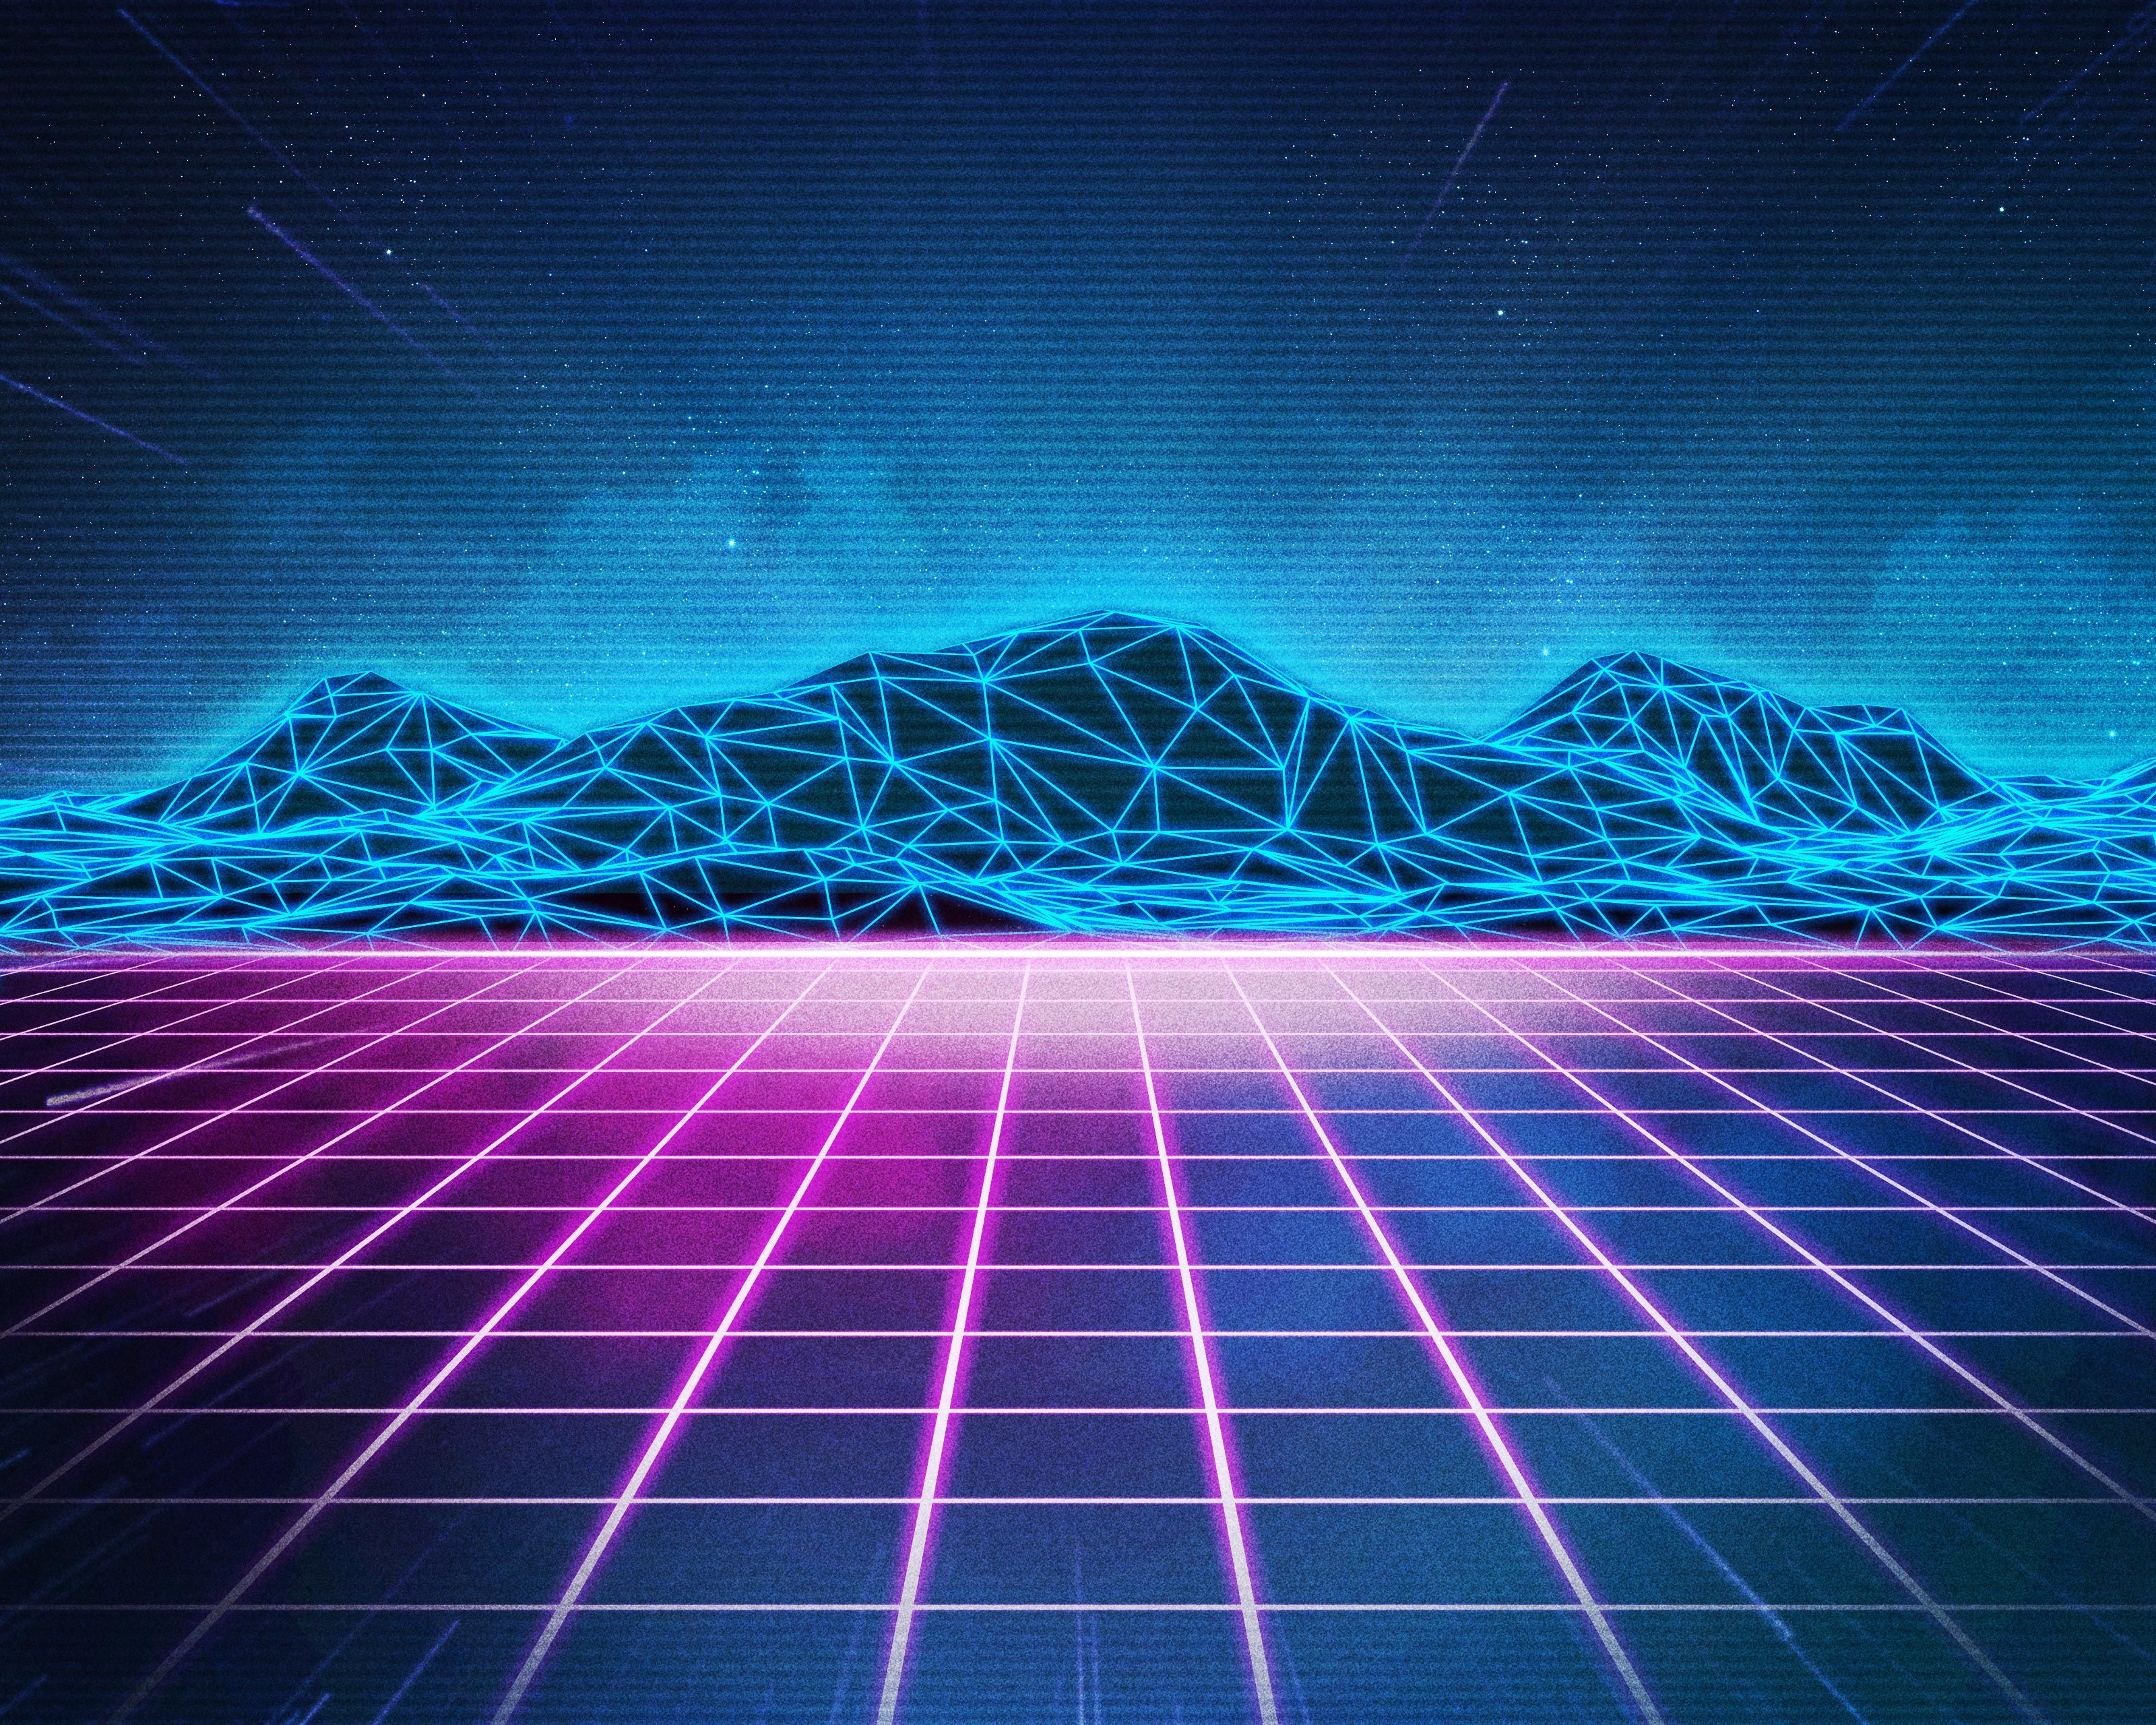 Rad Pack 80's-Themed HD Wallpapers - Nate Wren - Graphic ...